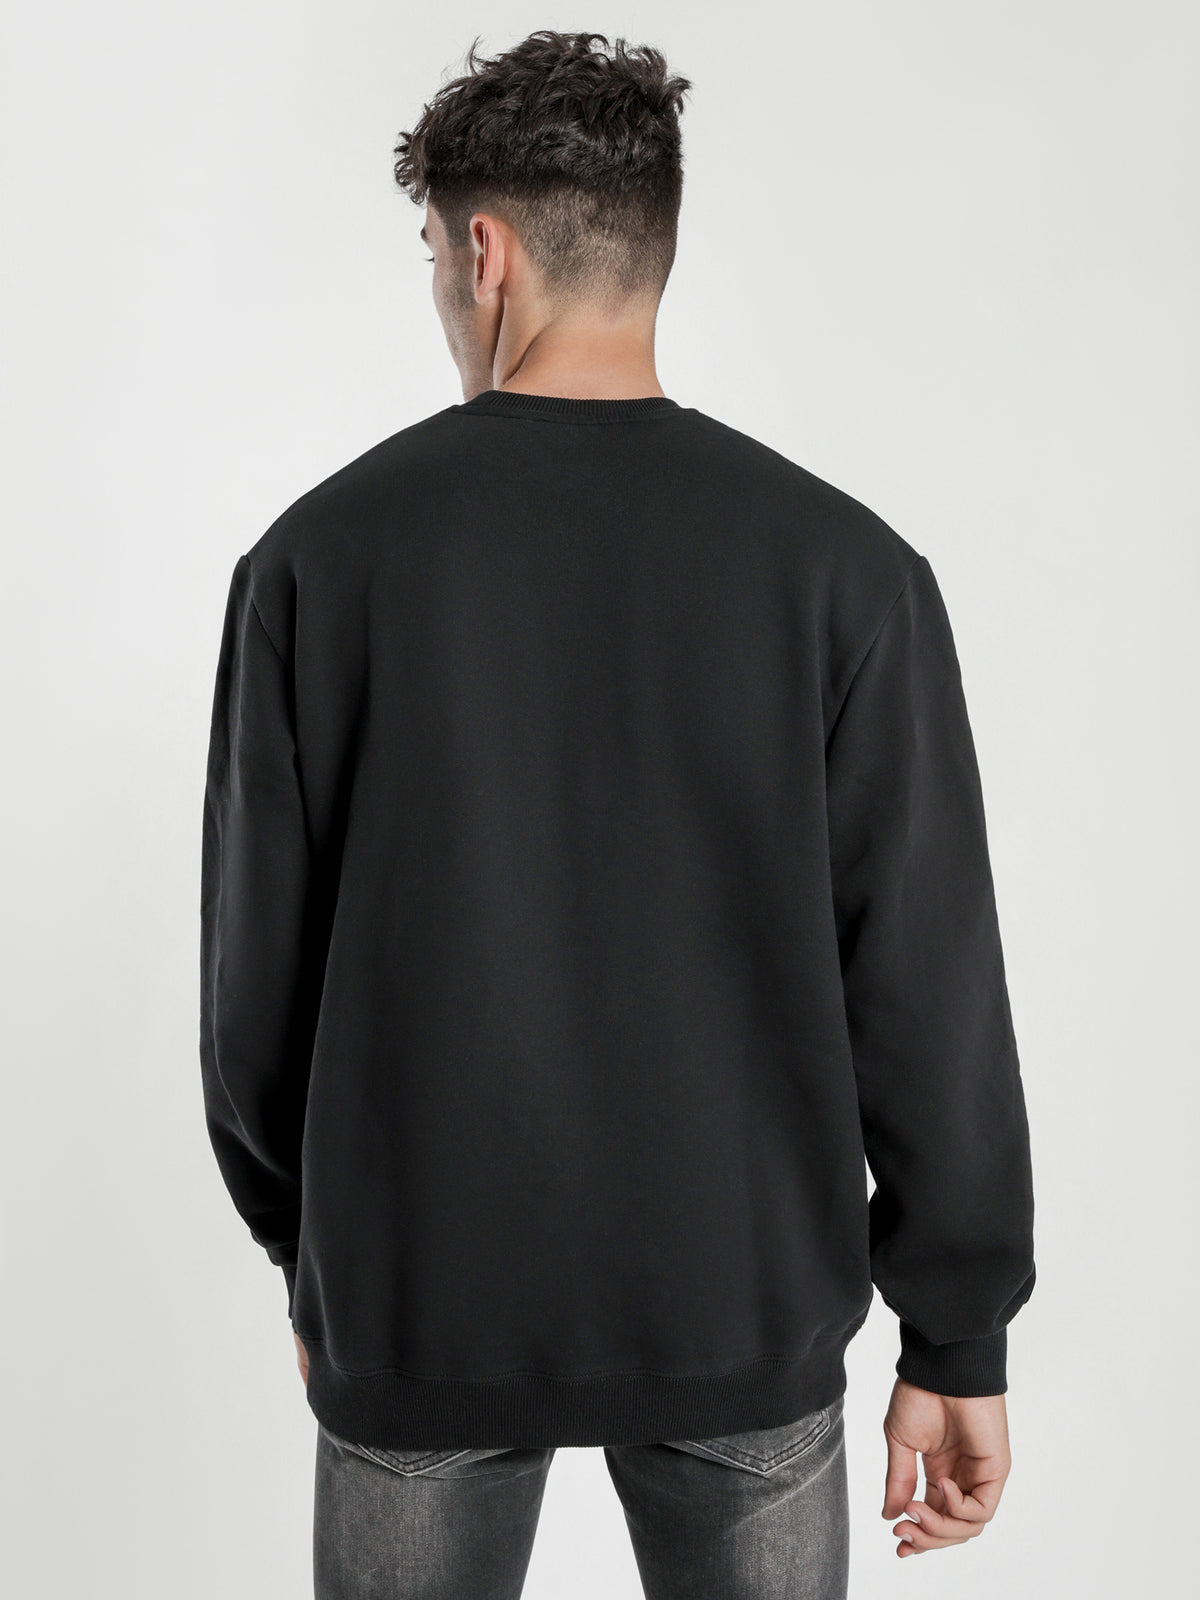 Box Crew Jumper in Black